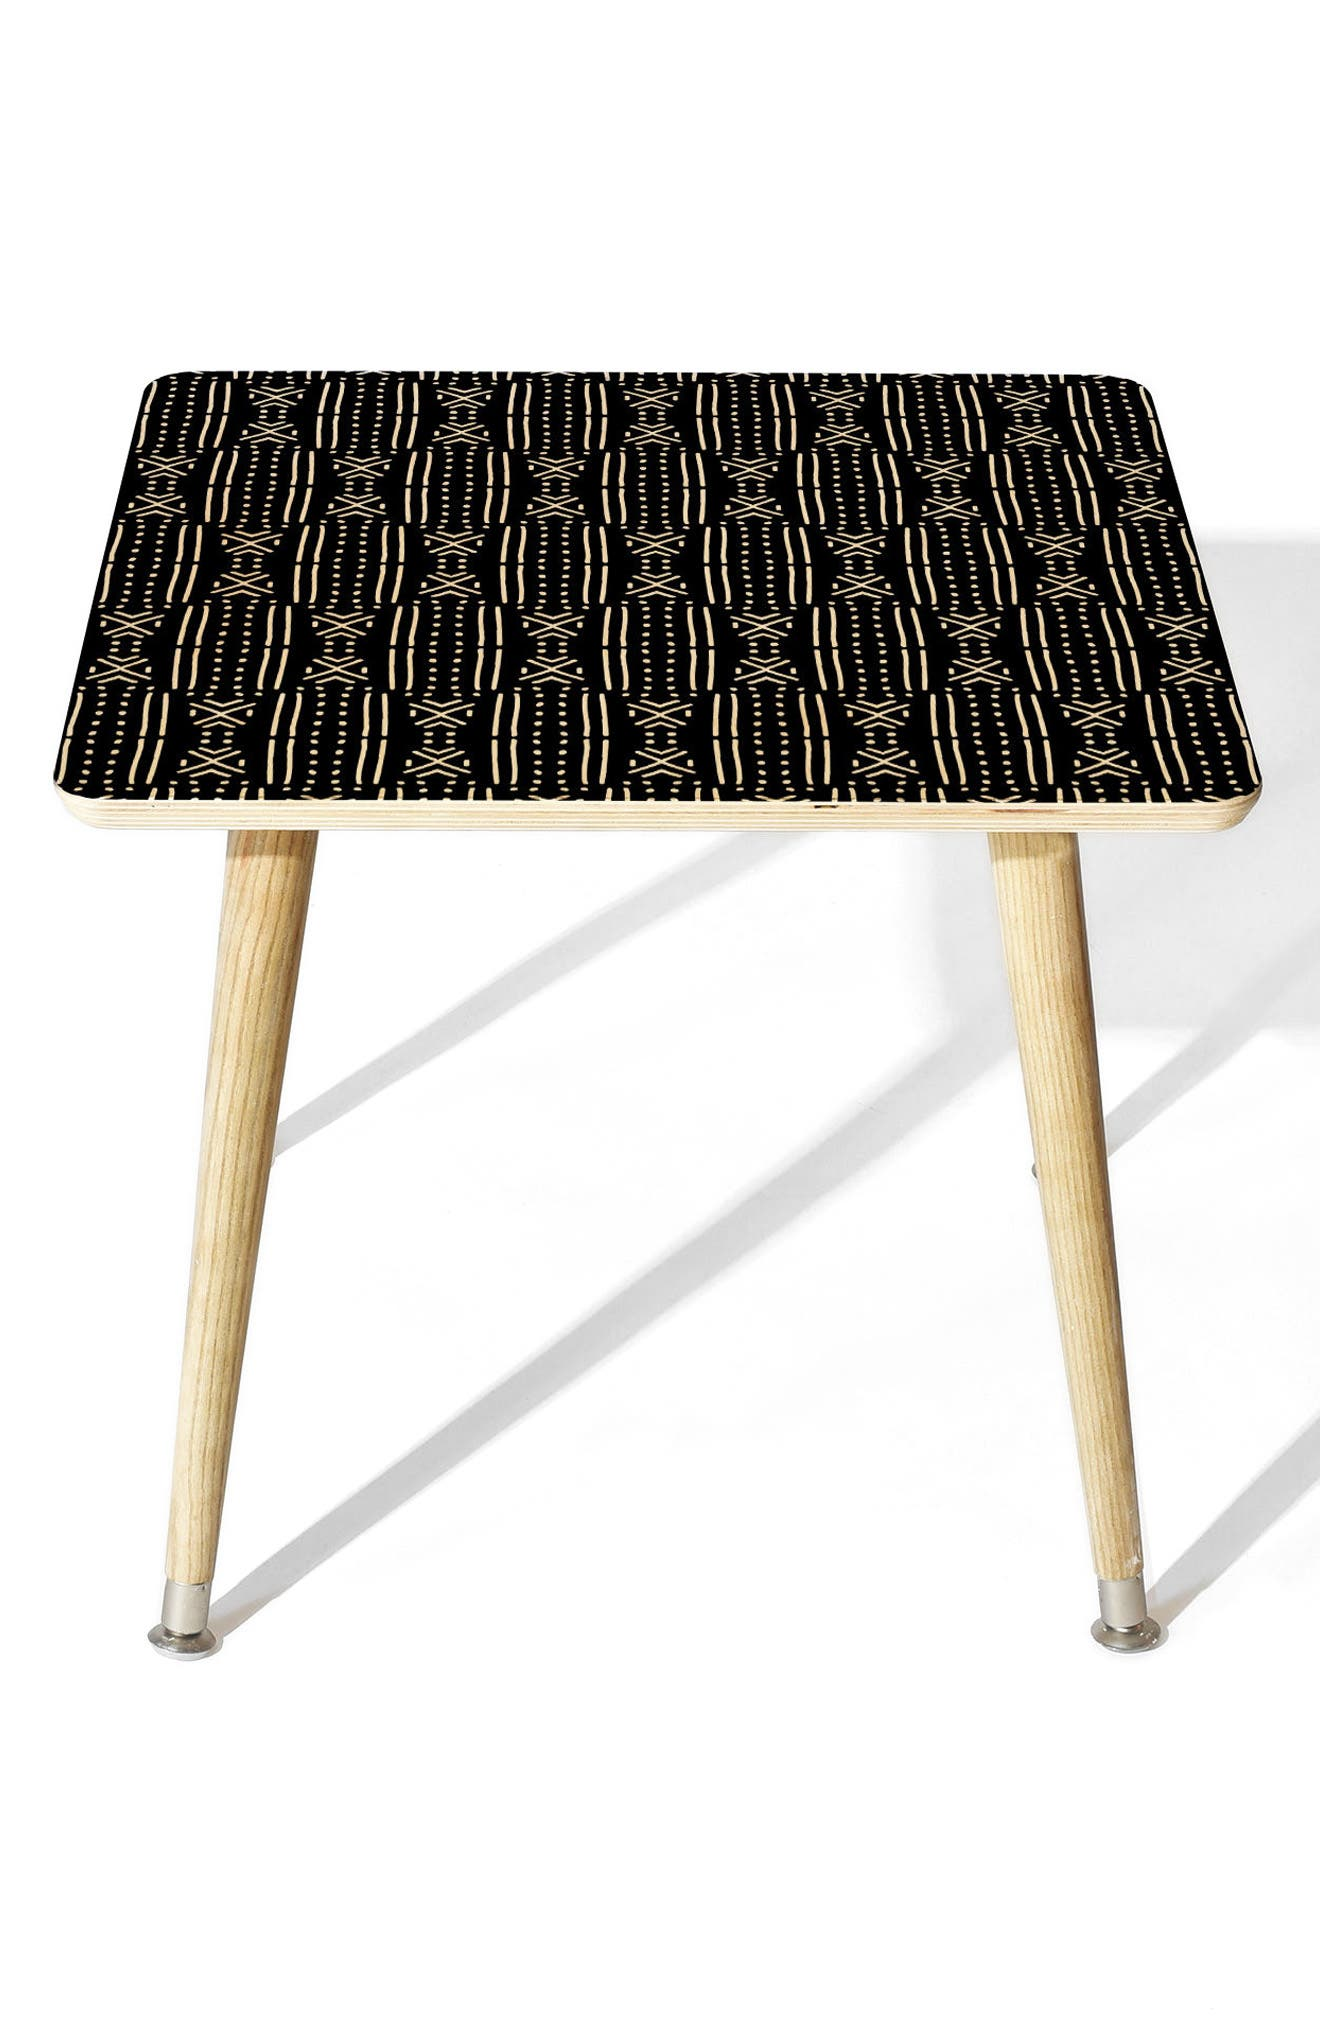 Alternate Image 1 Selected - Deny Designs Mudcloth Side Table